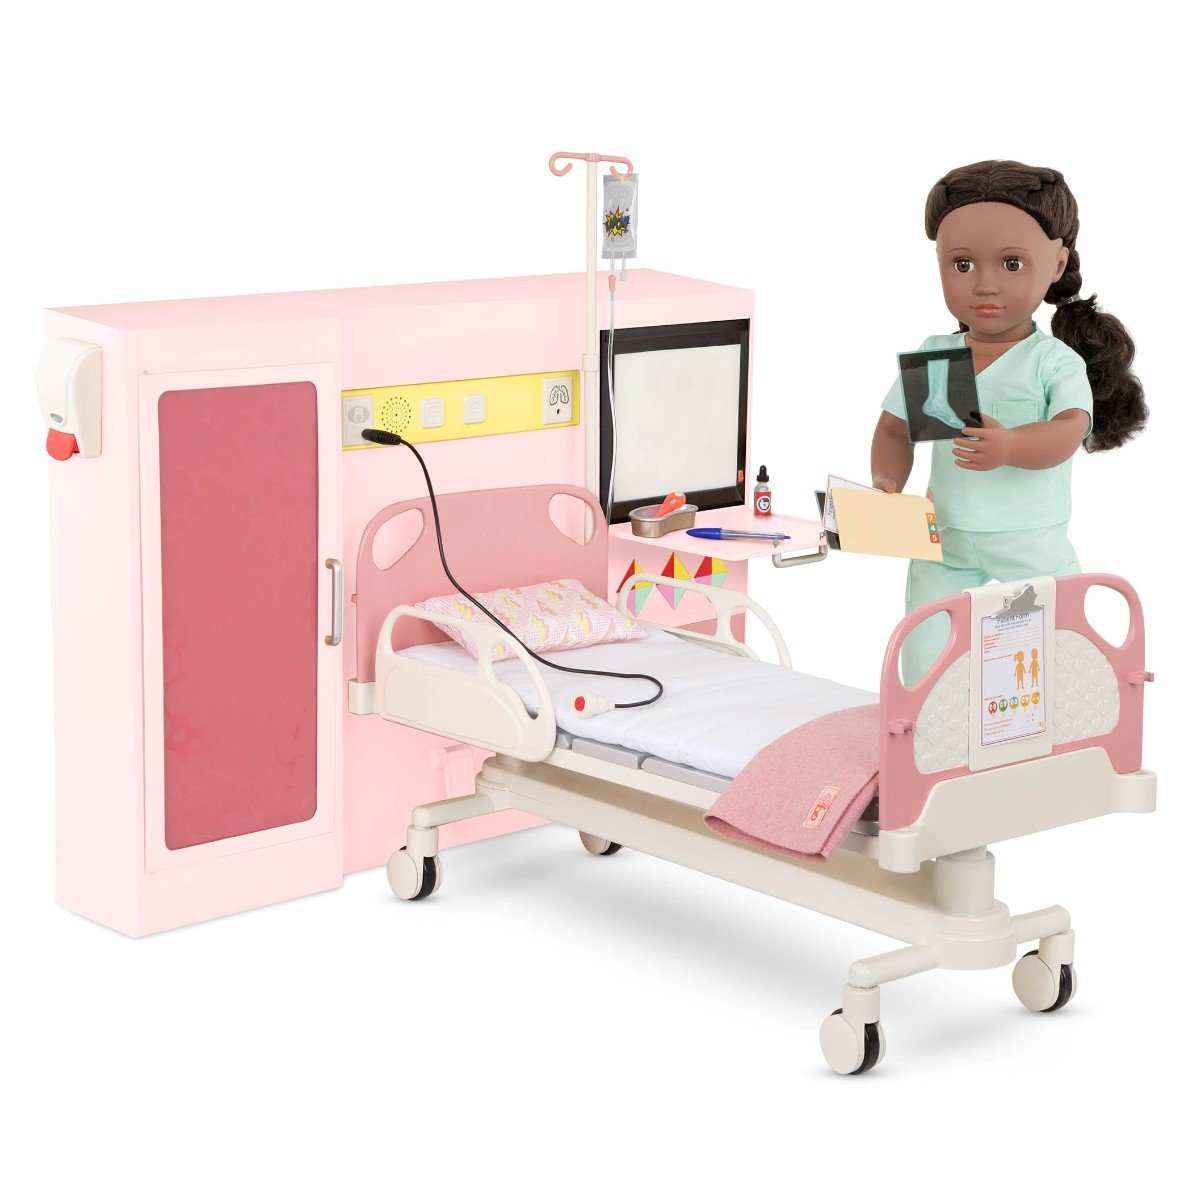 Our Generation - Hospital Get Well Room (735111)